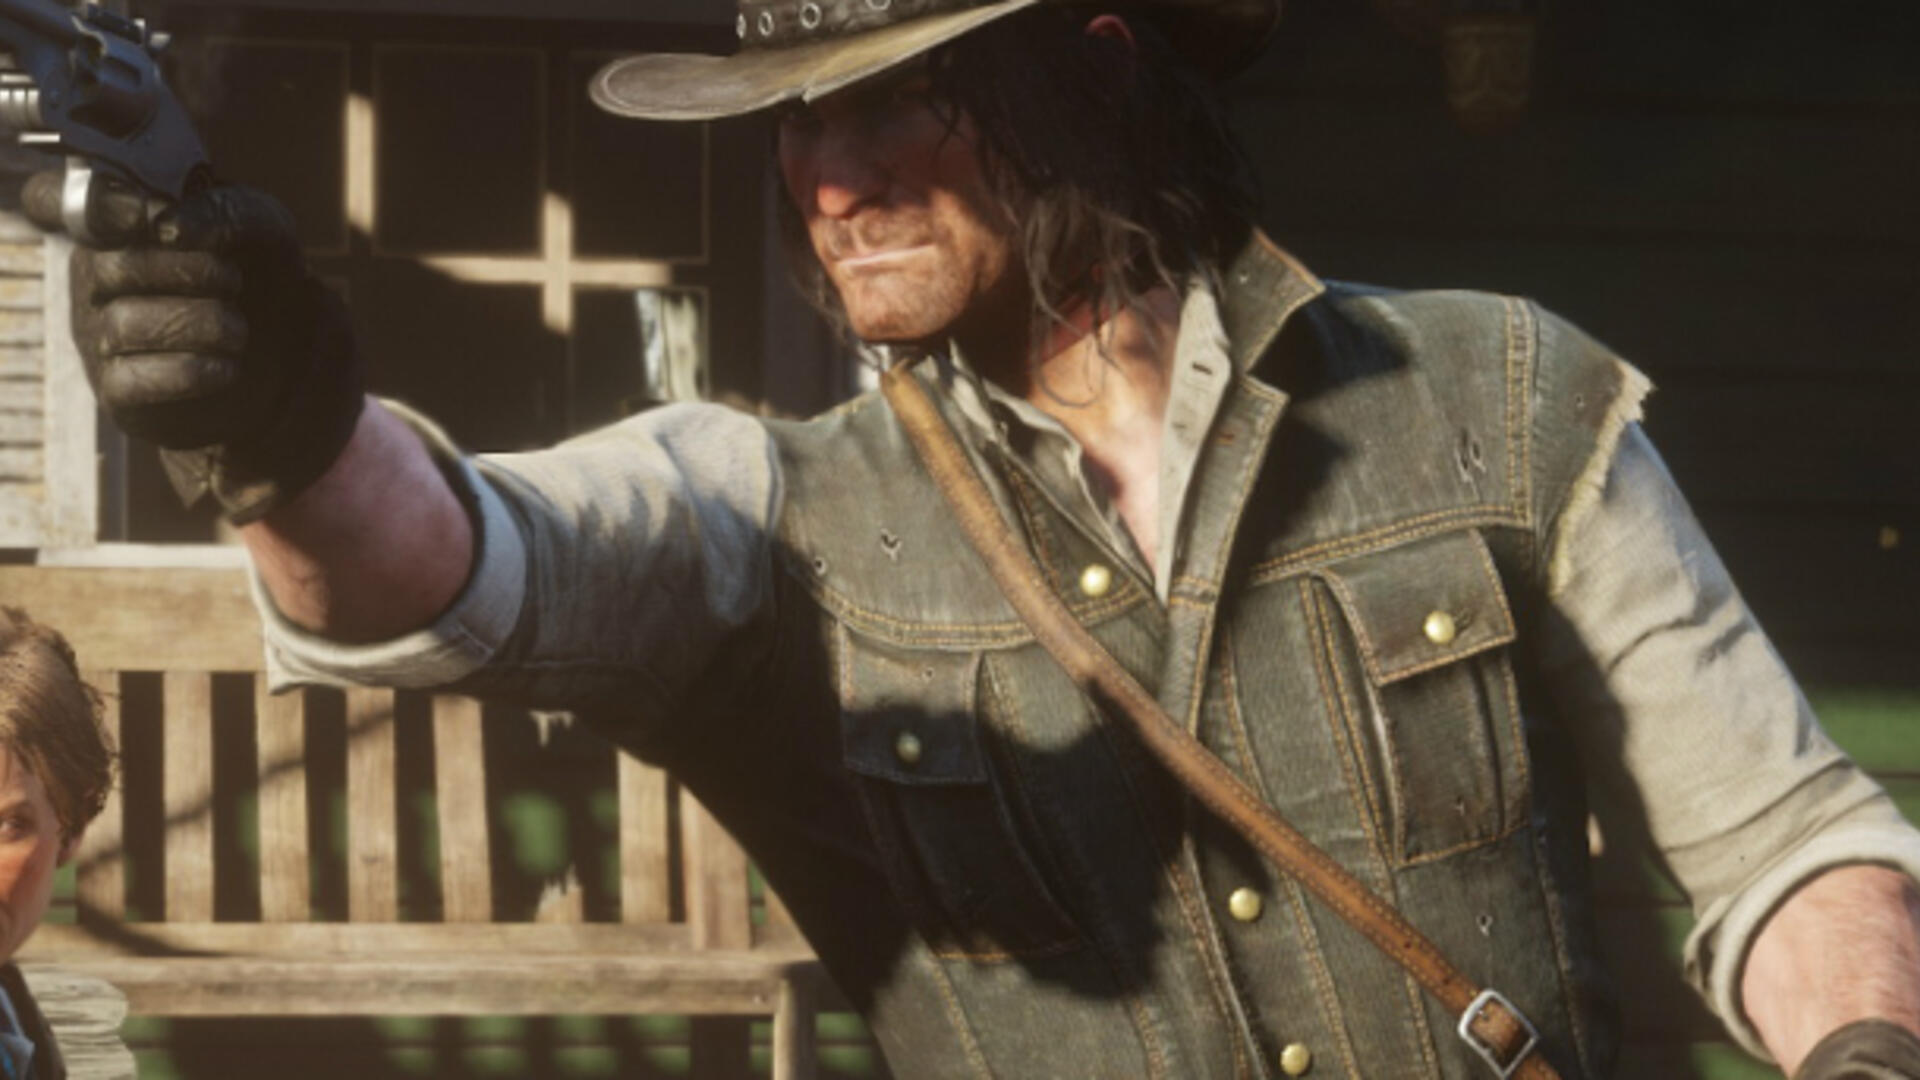 Red Dead Redemption 2 May Have Timed-Exclusive Content for PS4